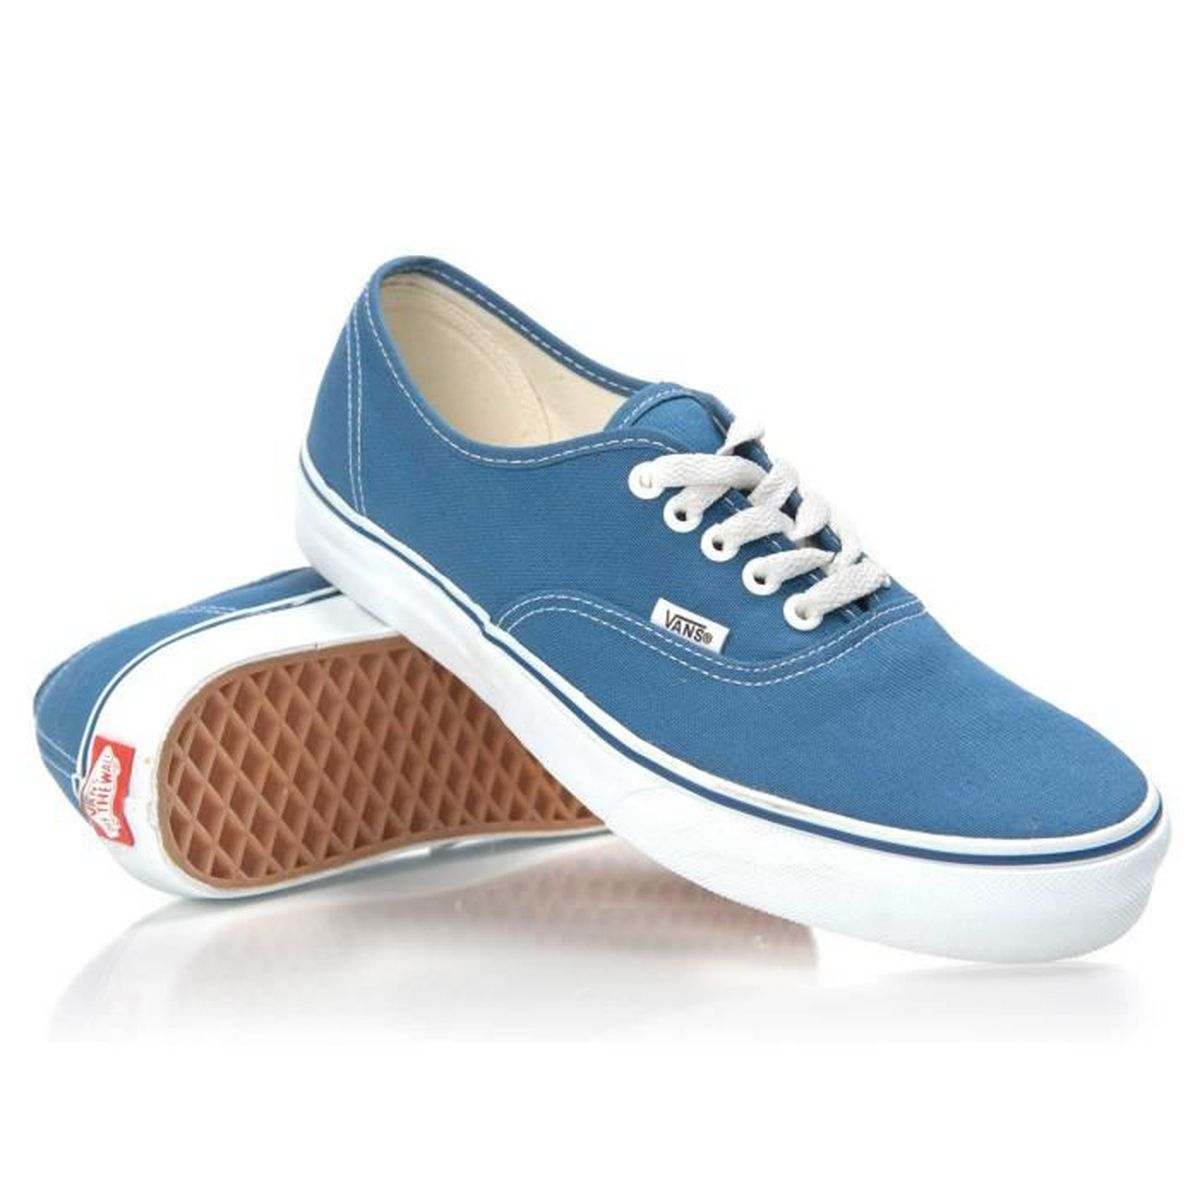 BASKET Chaussure Basse VANS Authentic Navy Homme Pointure